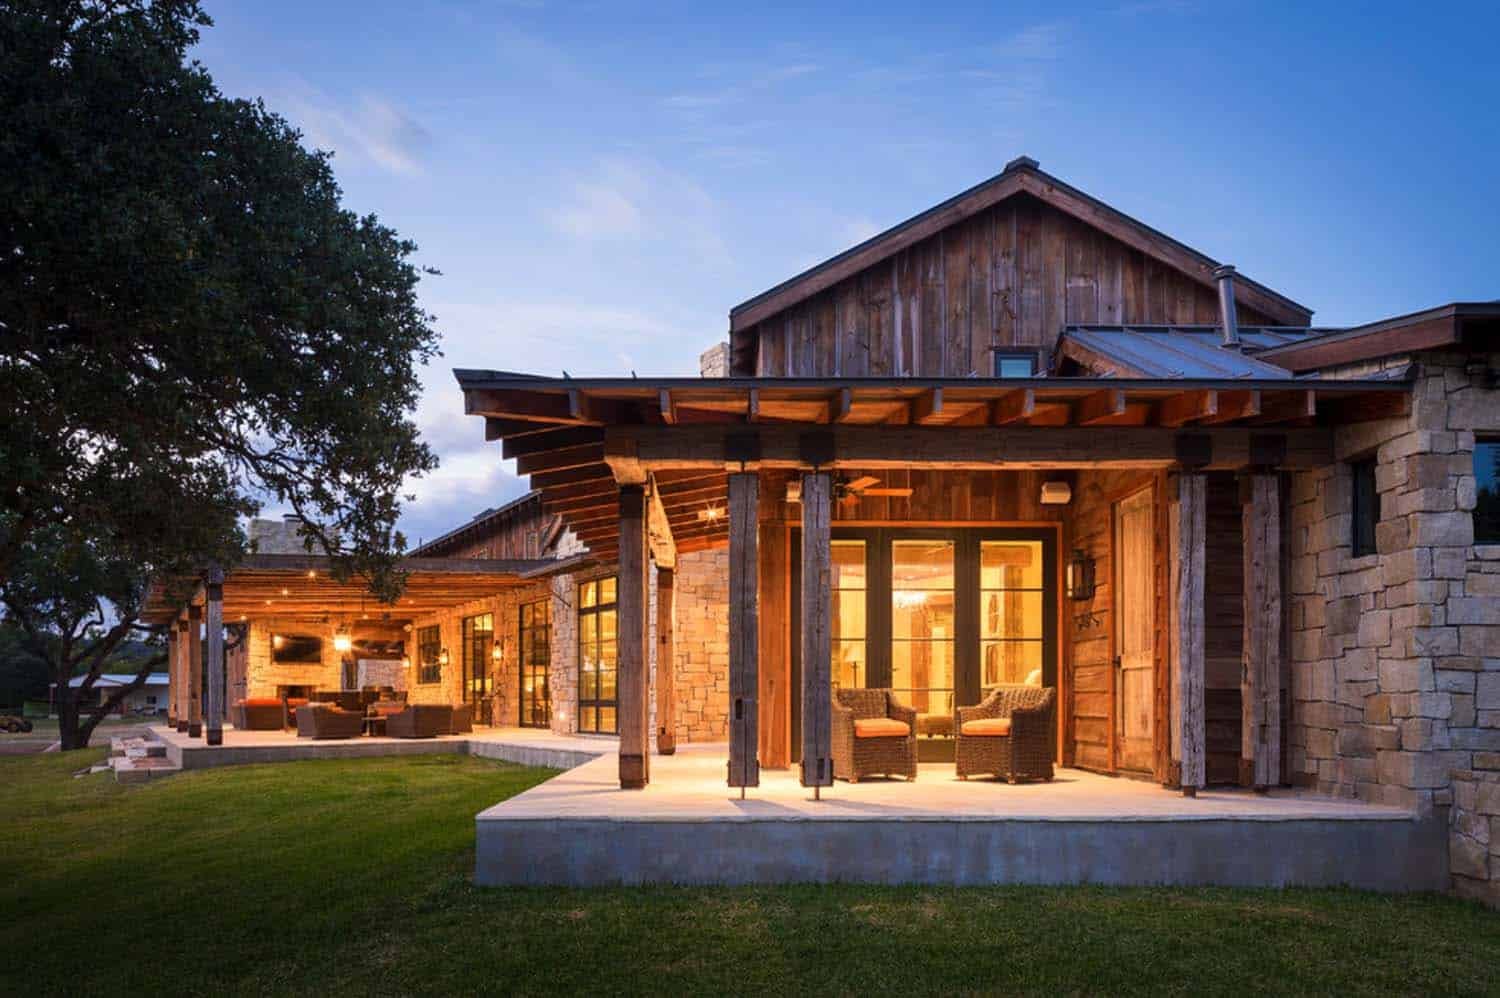 Modern rustic barn style retreat in texas hill country for Modern rustic home plans